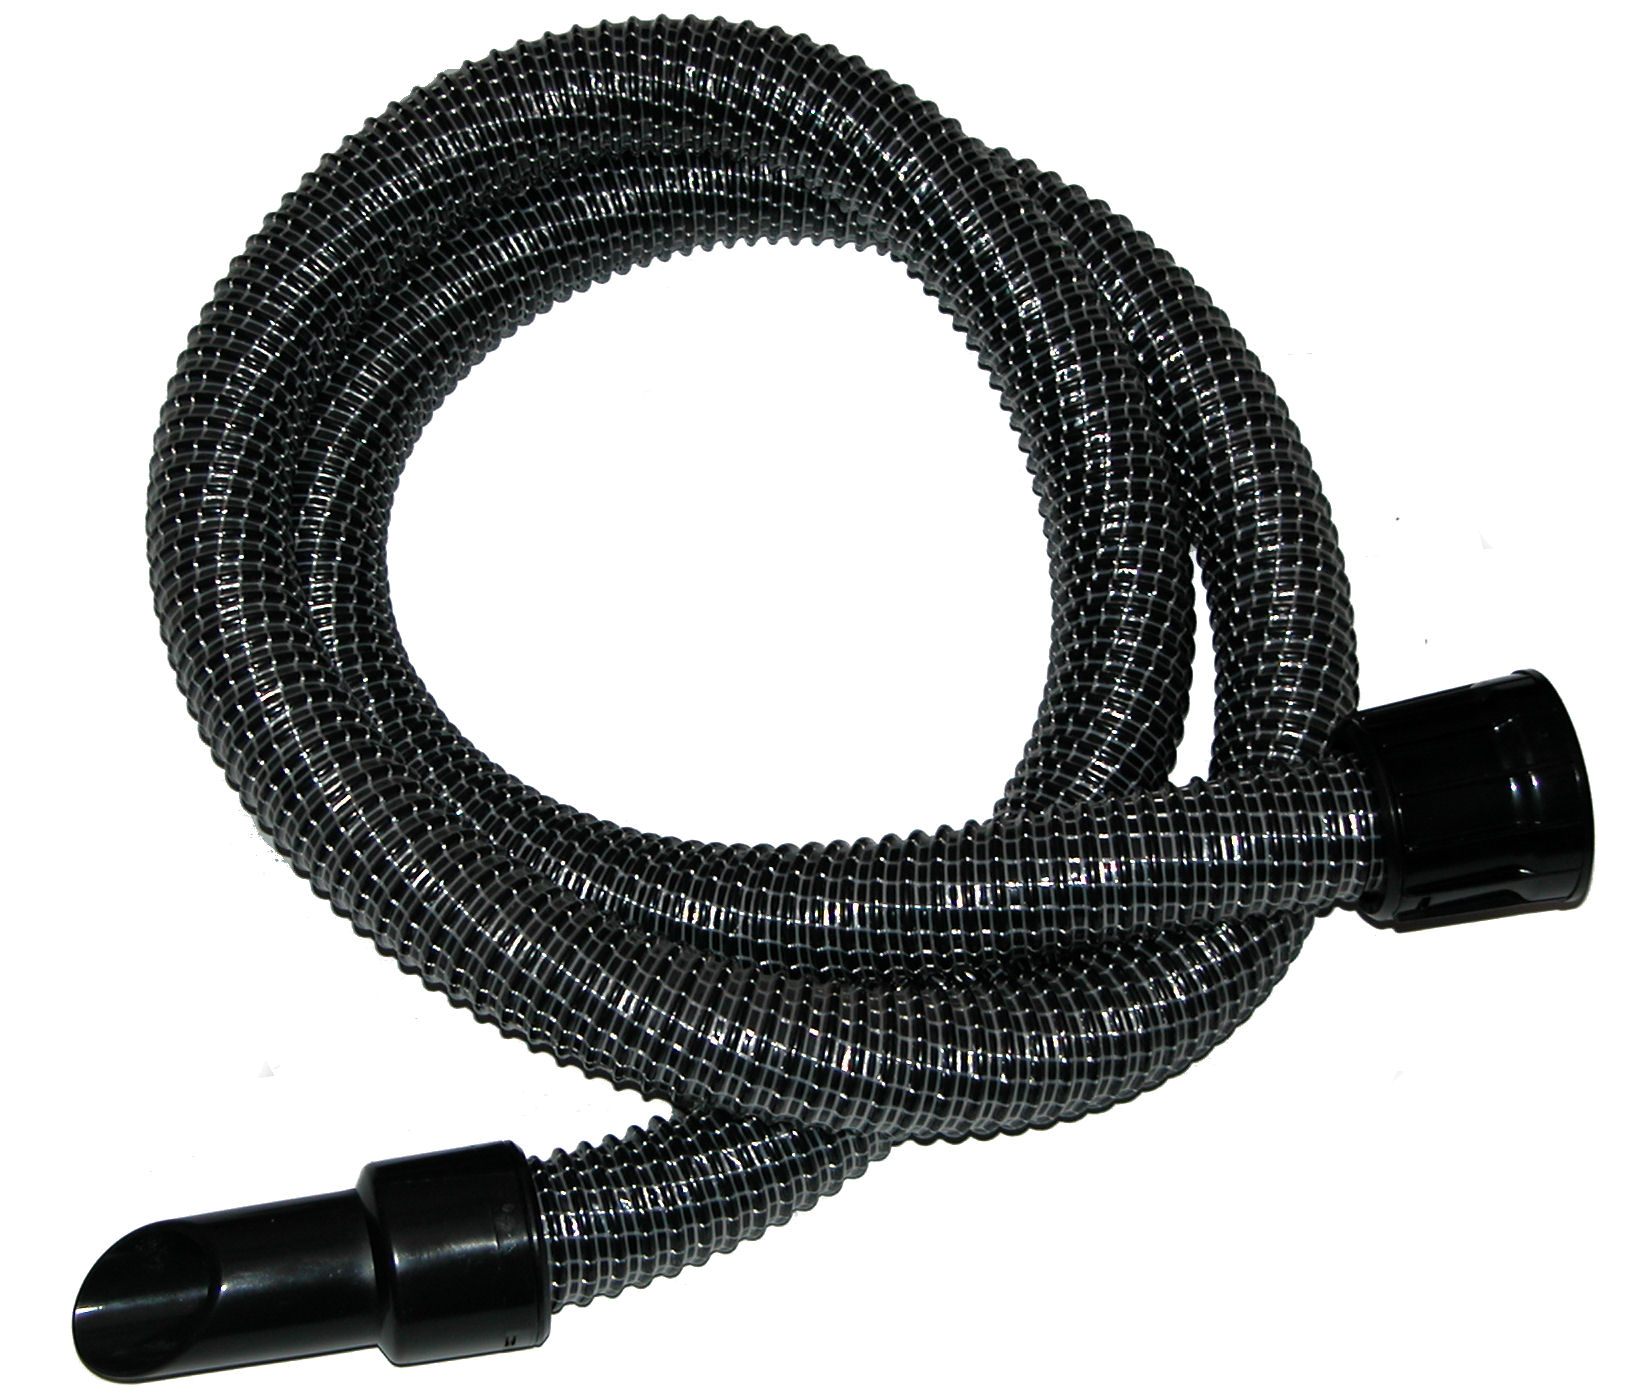 38mm_extention_suction_tube